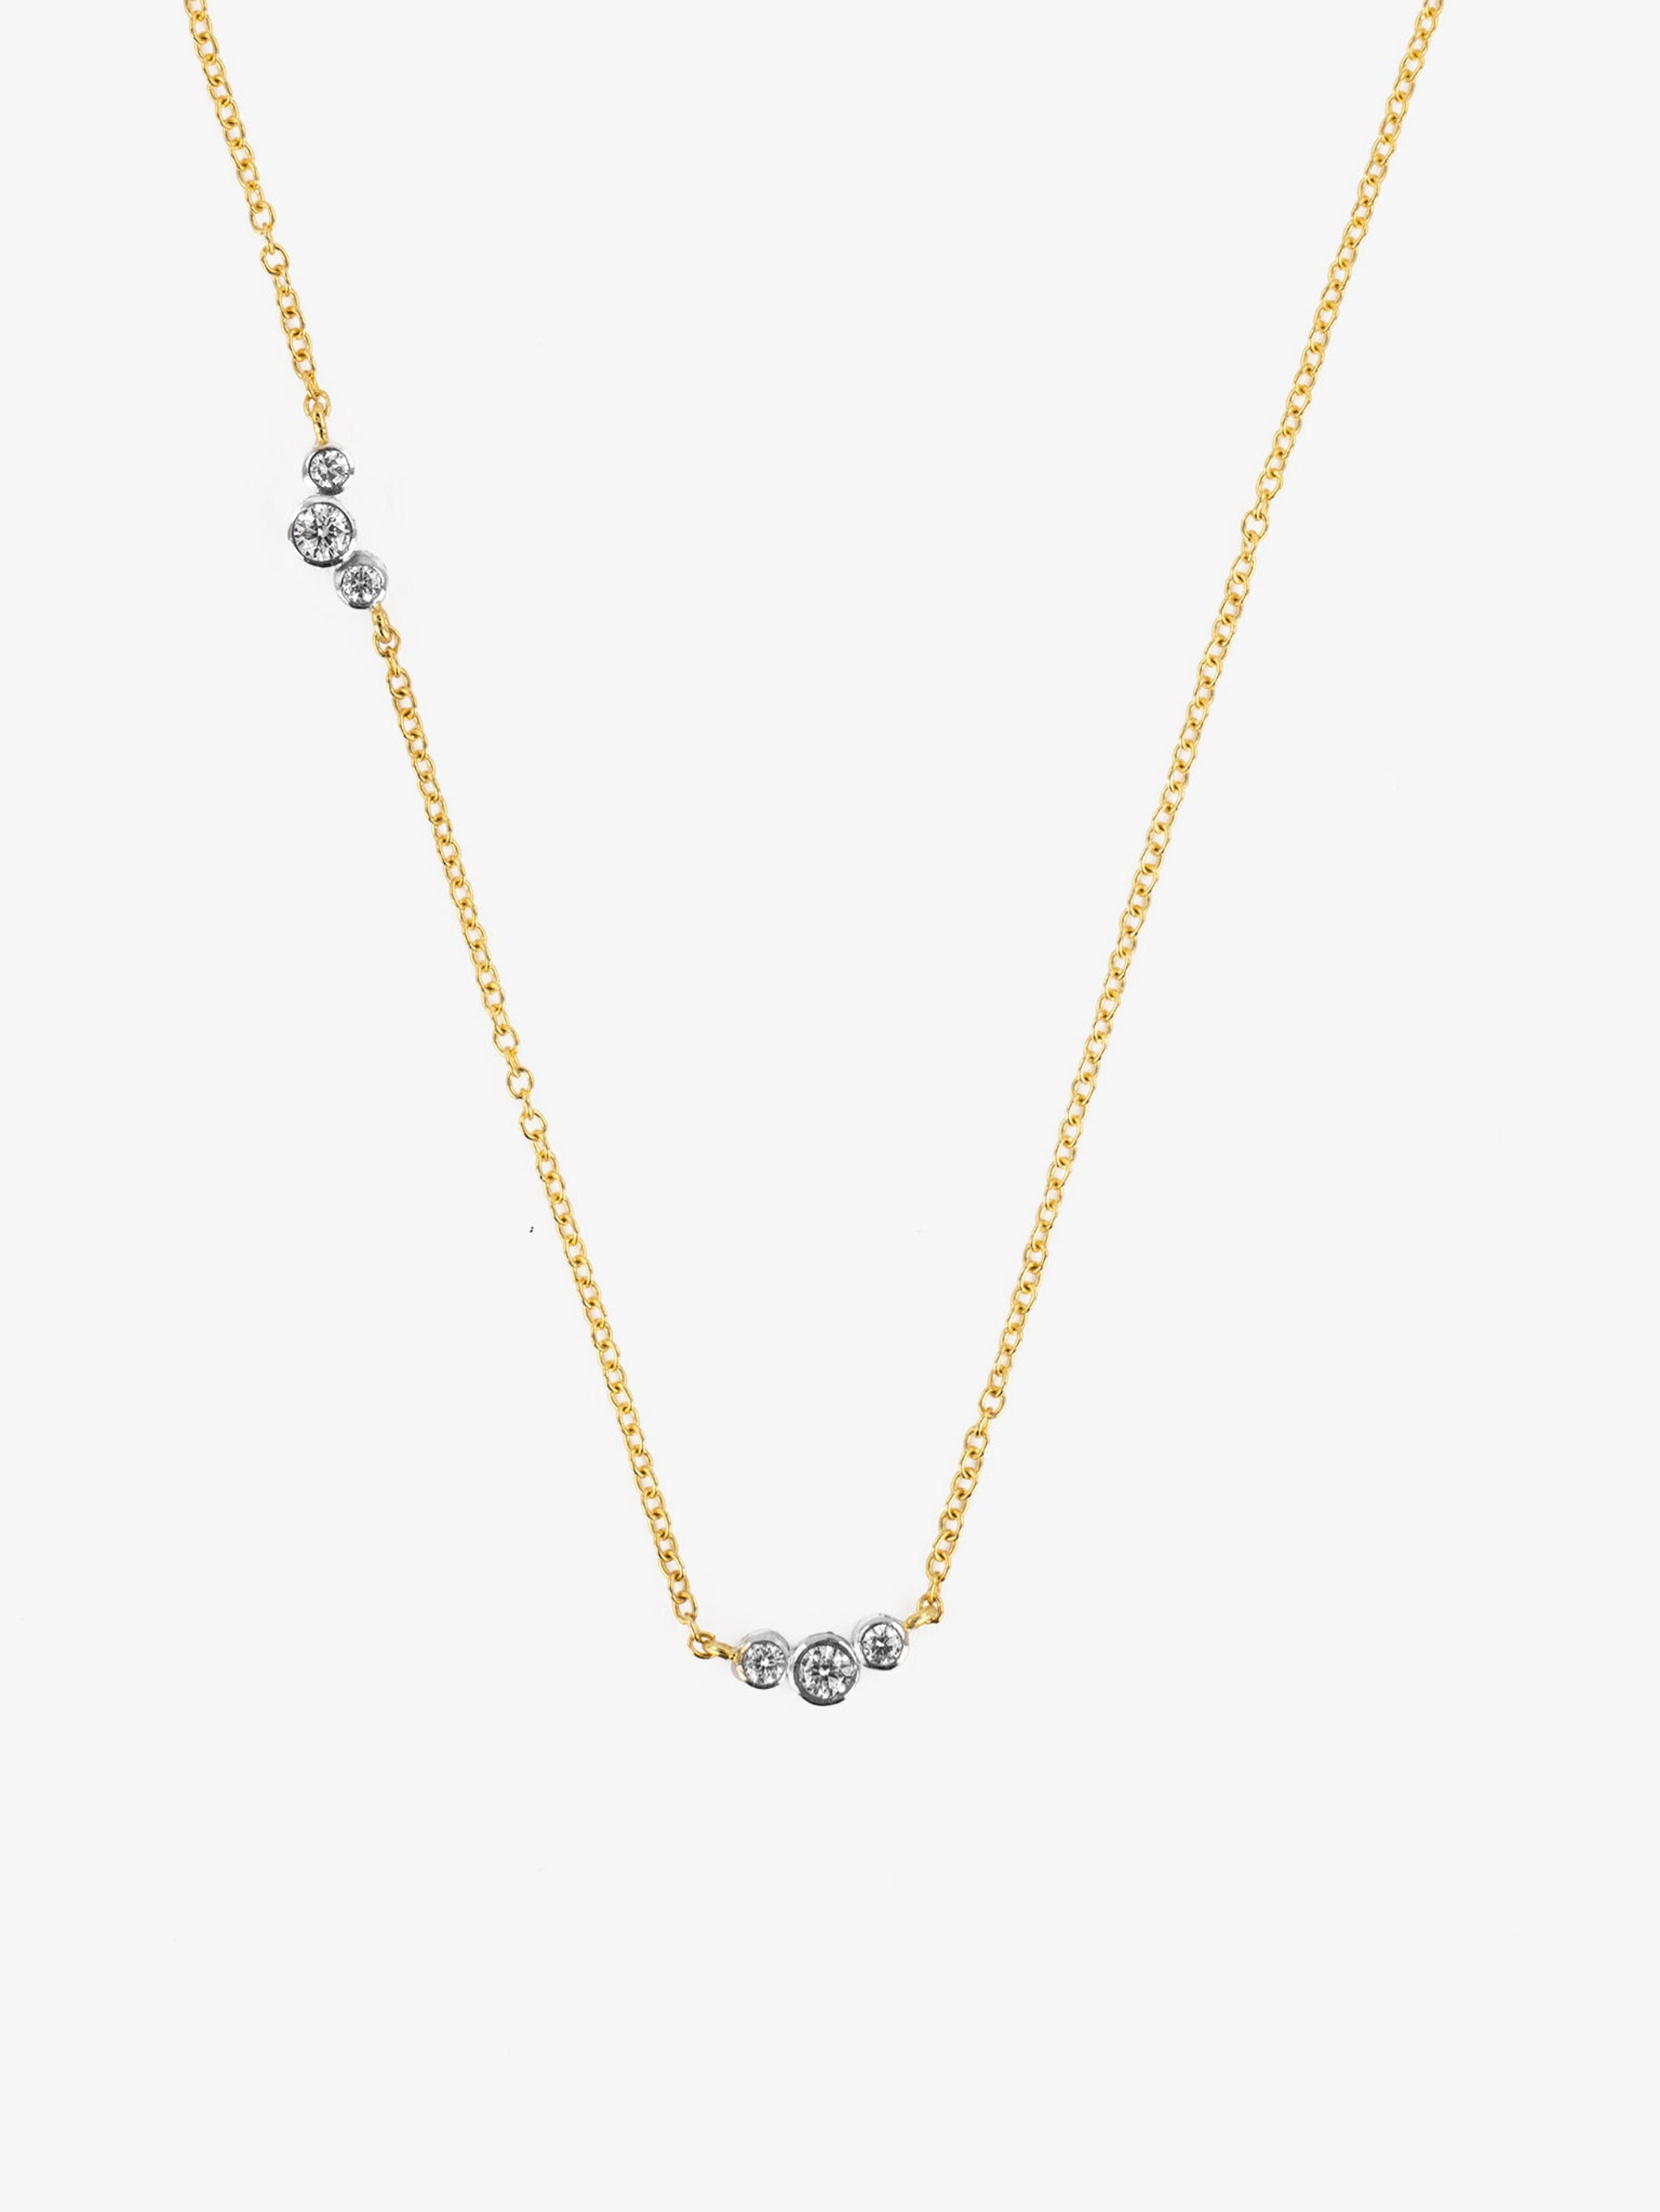 Scattered diamond necklace photo 3